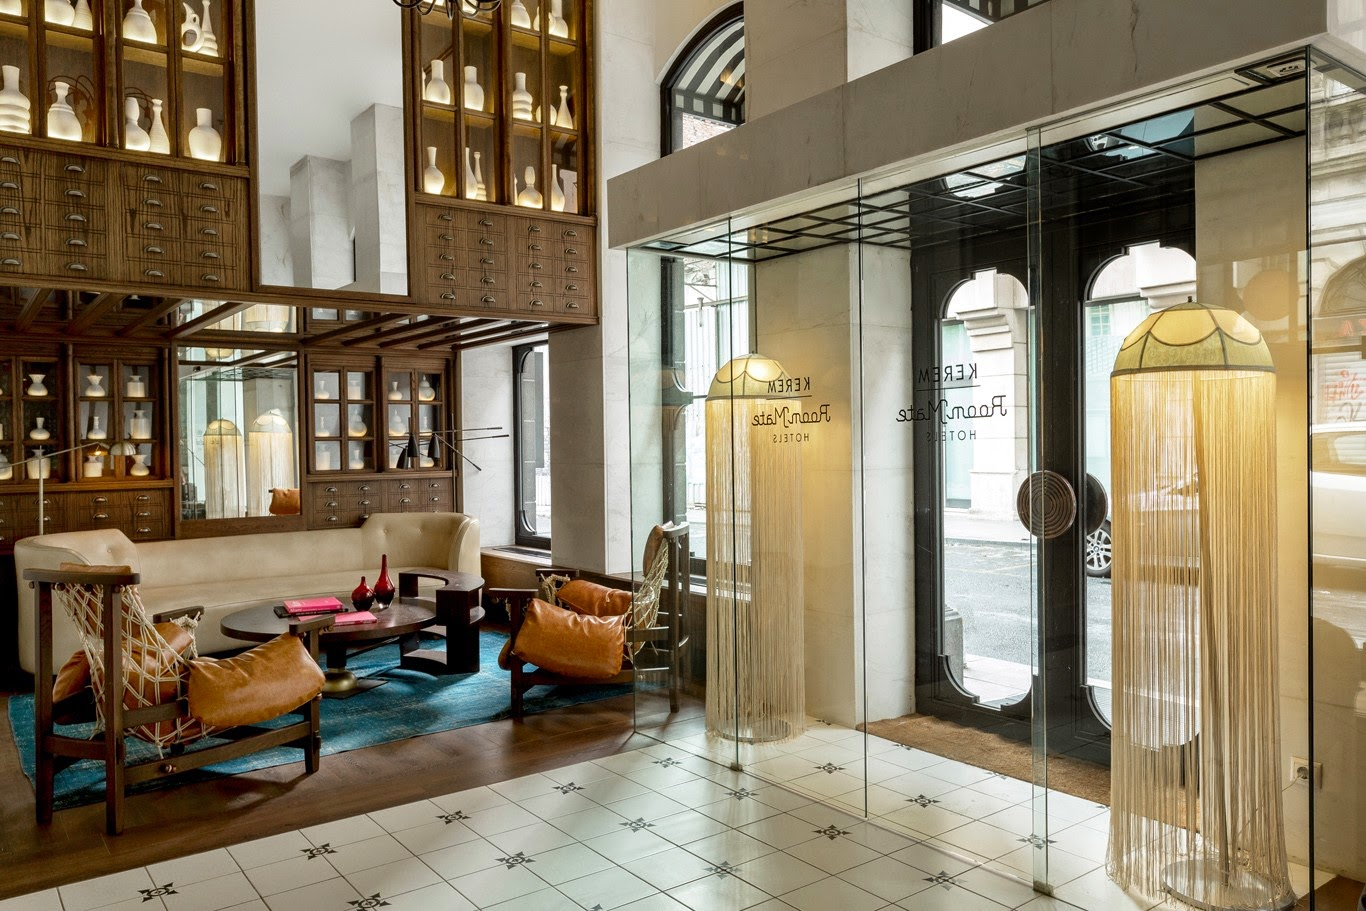 Room mate kerem hotel by lazaro rosa violan for Decor hotel istanbul